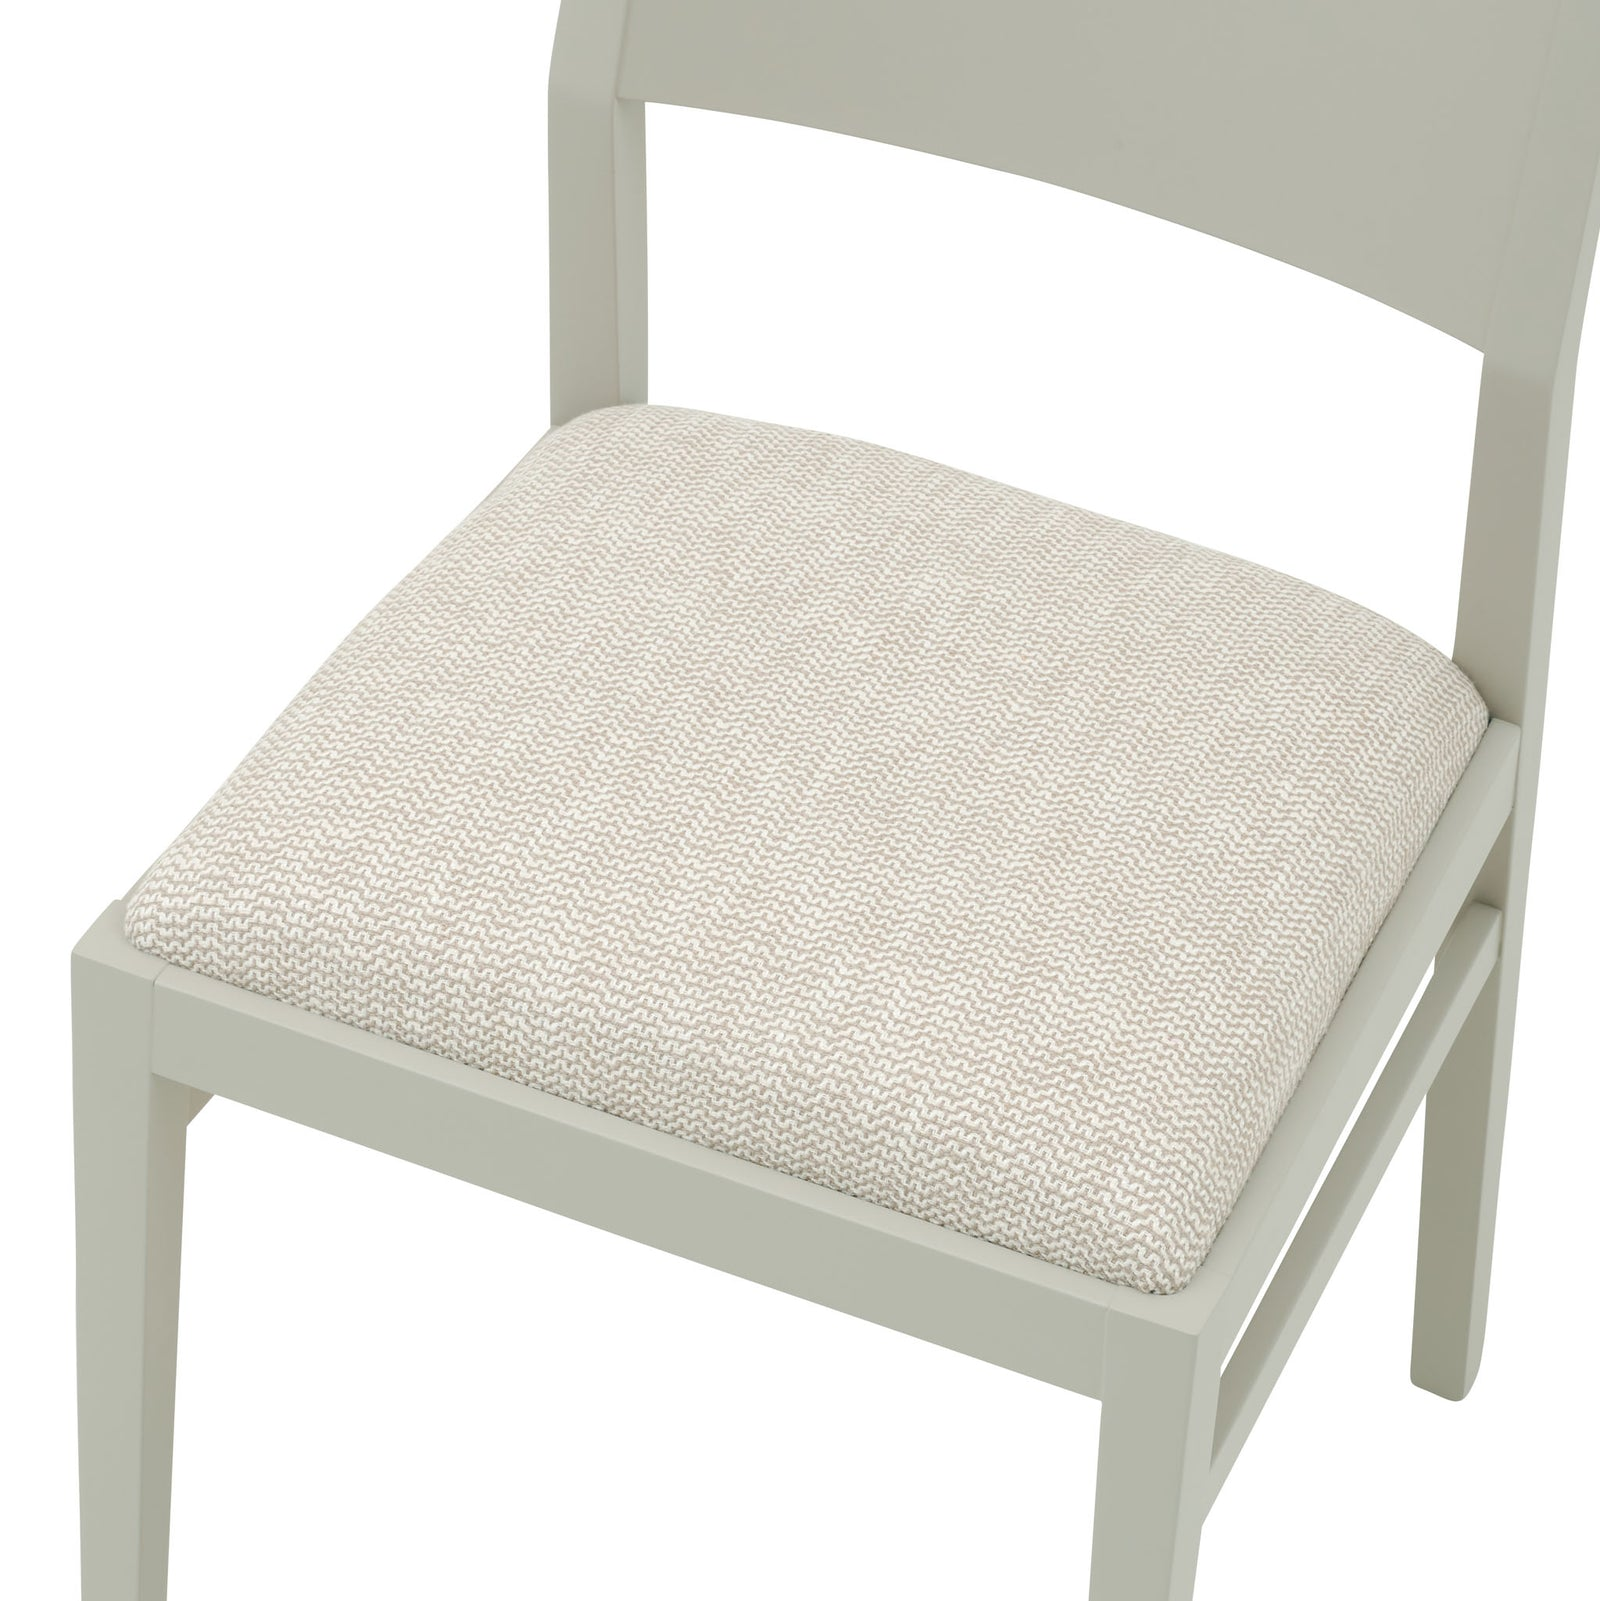 The Stylish James Chair in the textured weave Kora Basket from Villa Nova